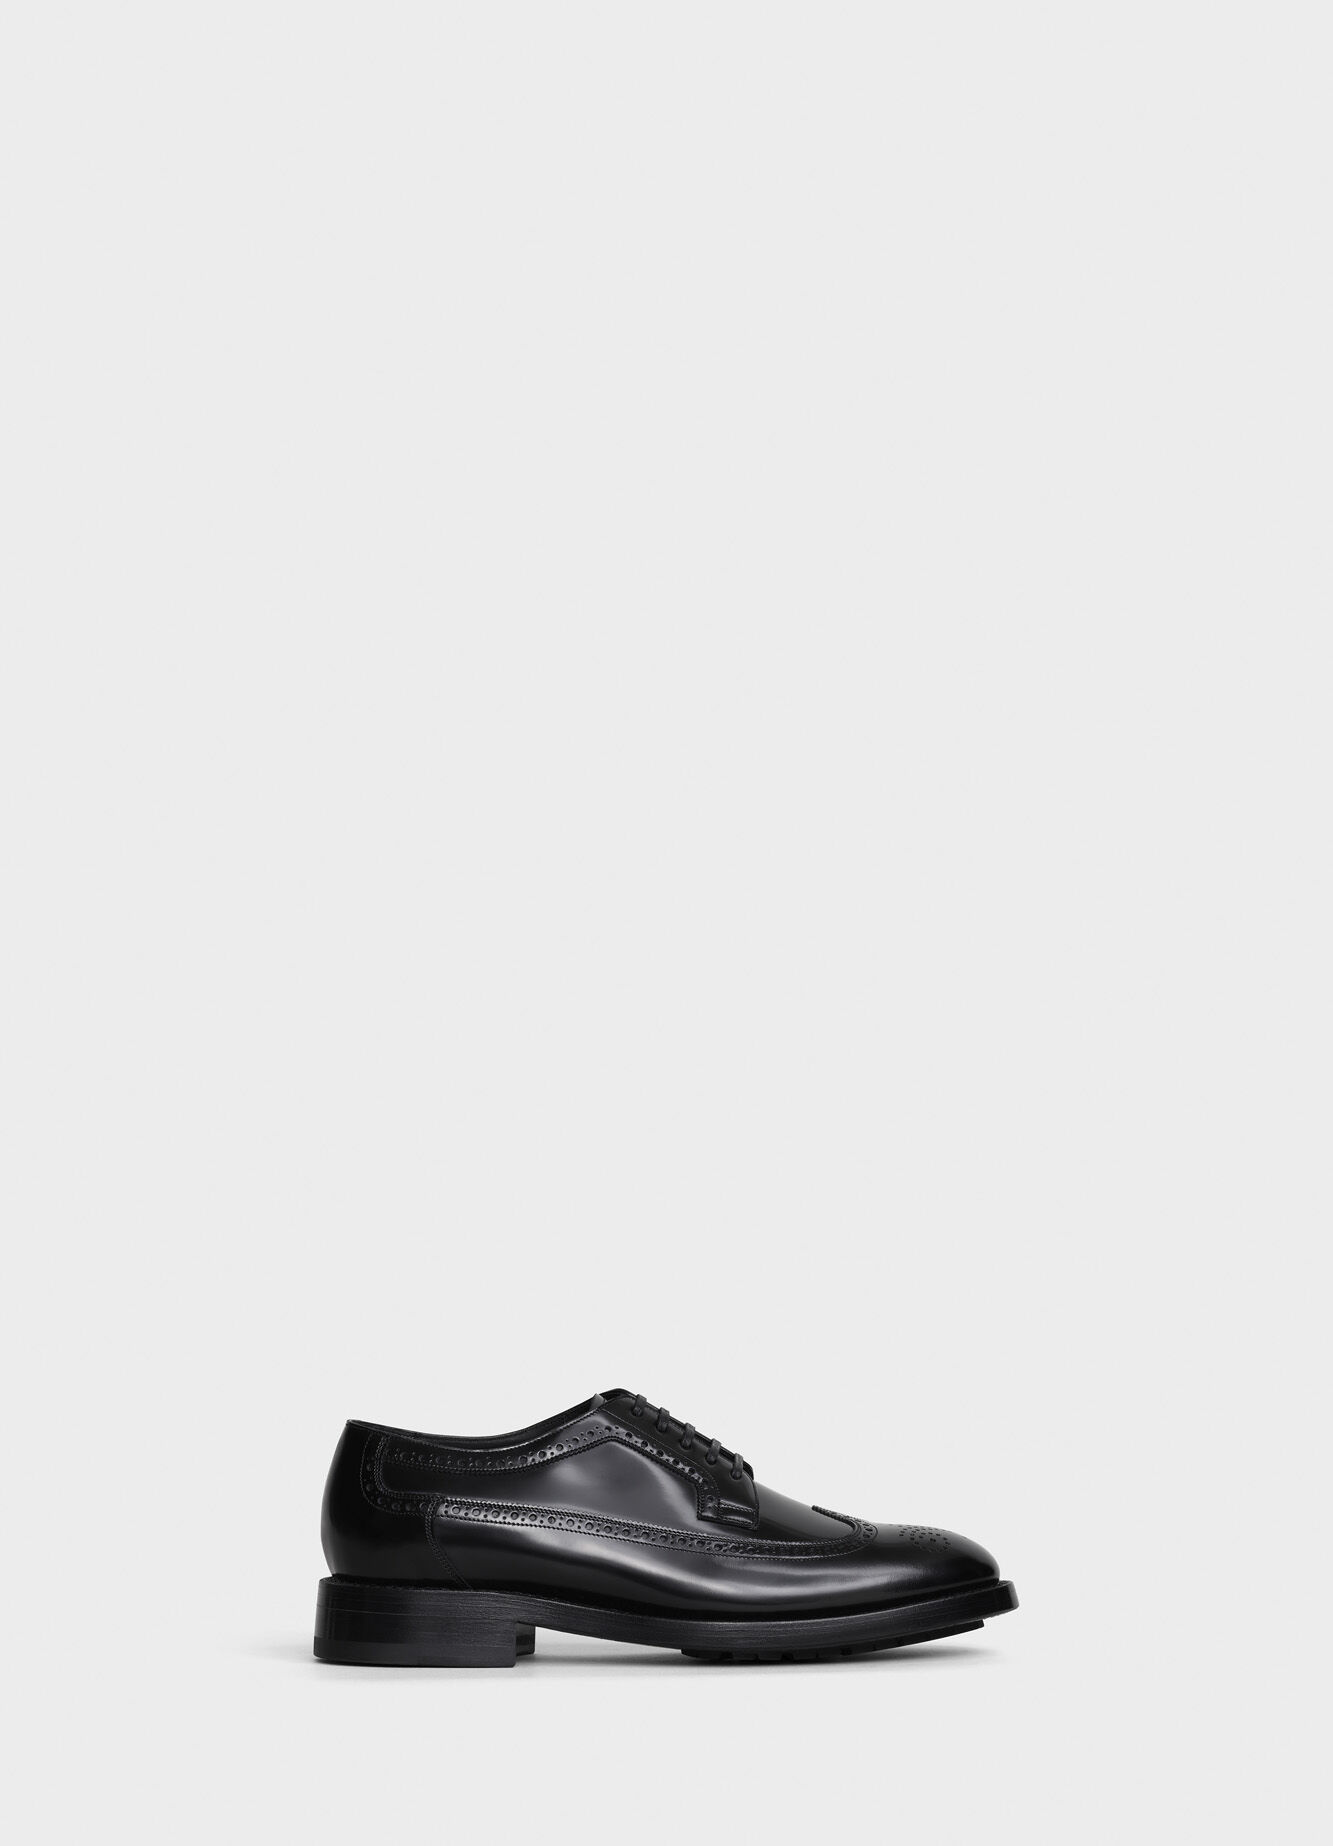 CELINE ACADEMY ARMY DERBY WITH BROGUE DETAILS IN POLISHED CALFSKIN